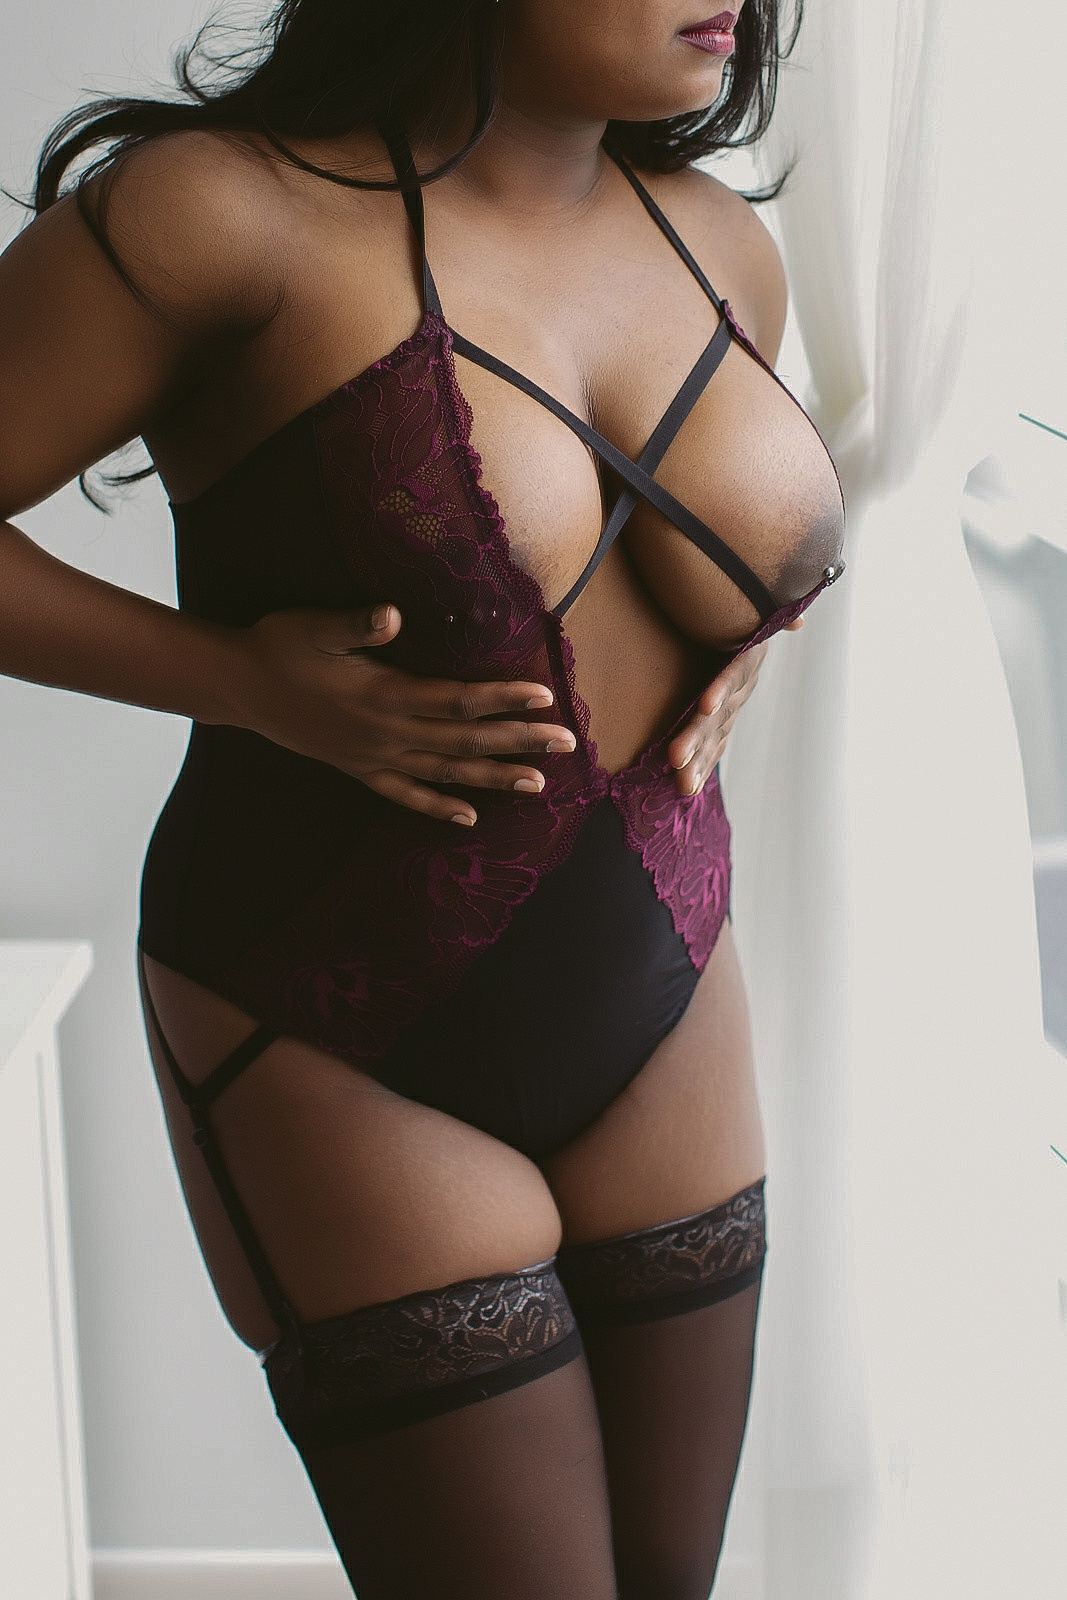 Image URL: http://wlp.whiteliesphotography.com/wlp/wp-content/uploads/2016/11/toronto-boudoir-by-white-lies-photography-3241.jpg  Click to view this fusker